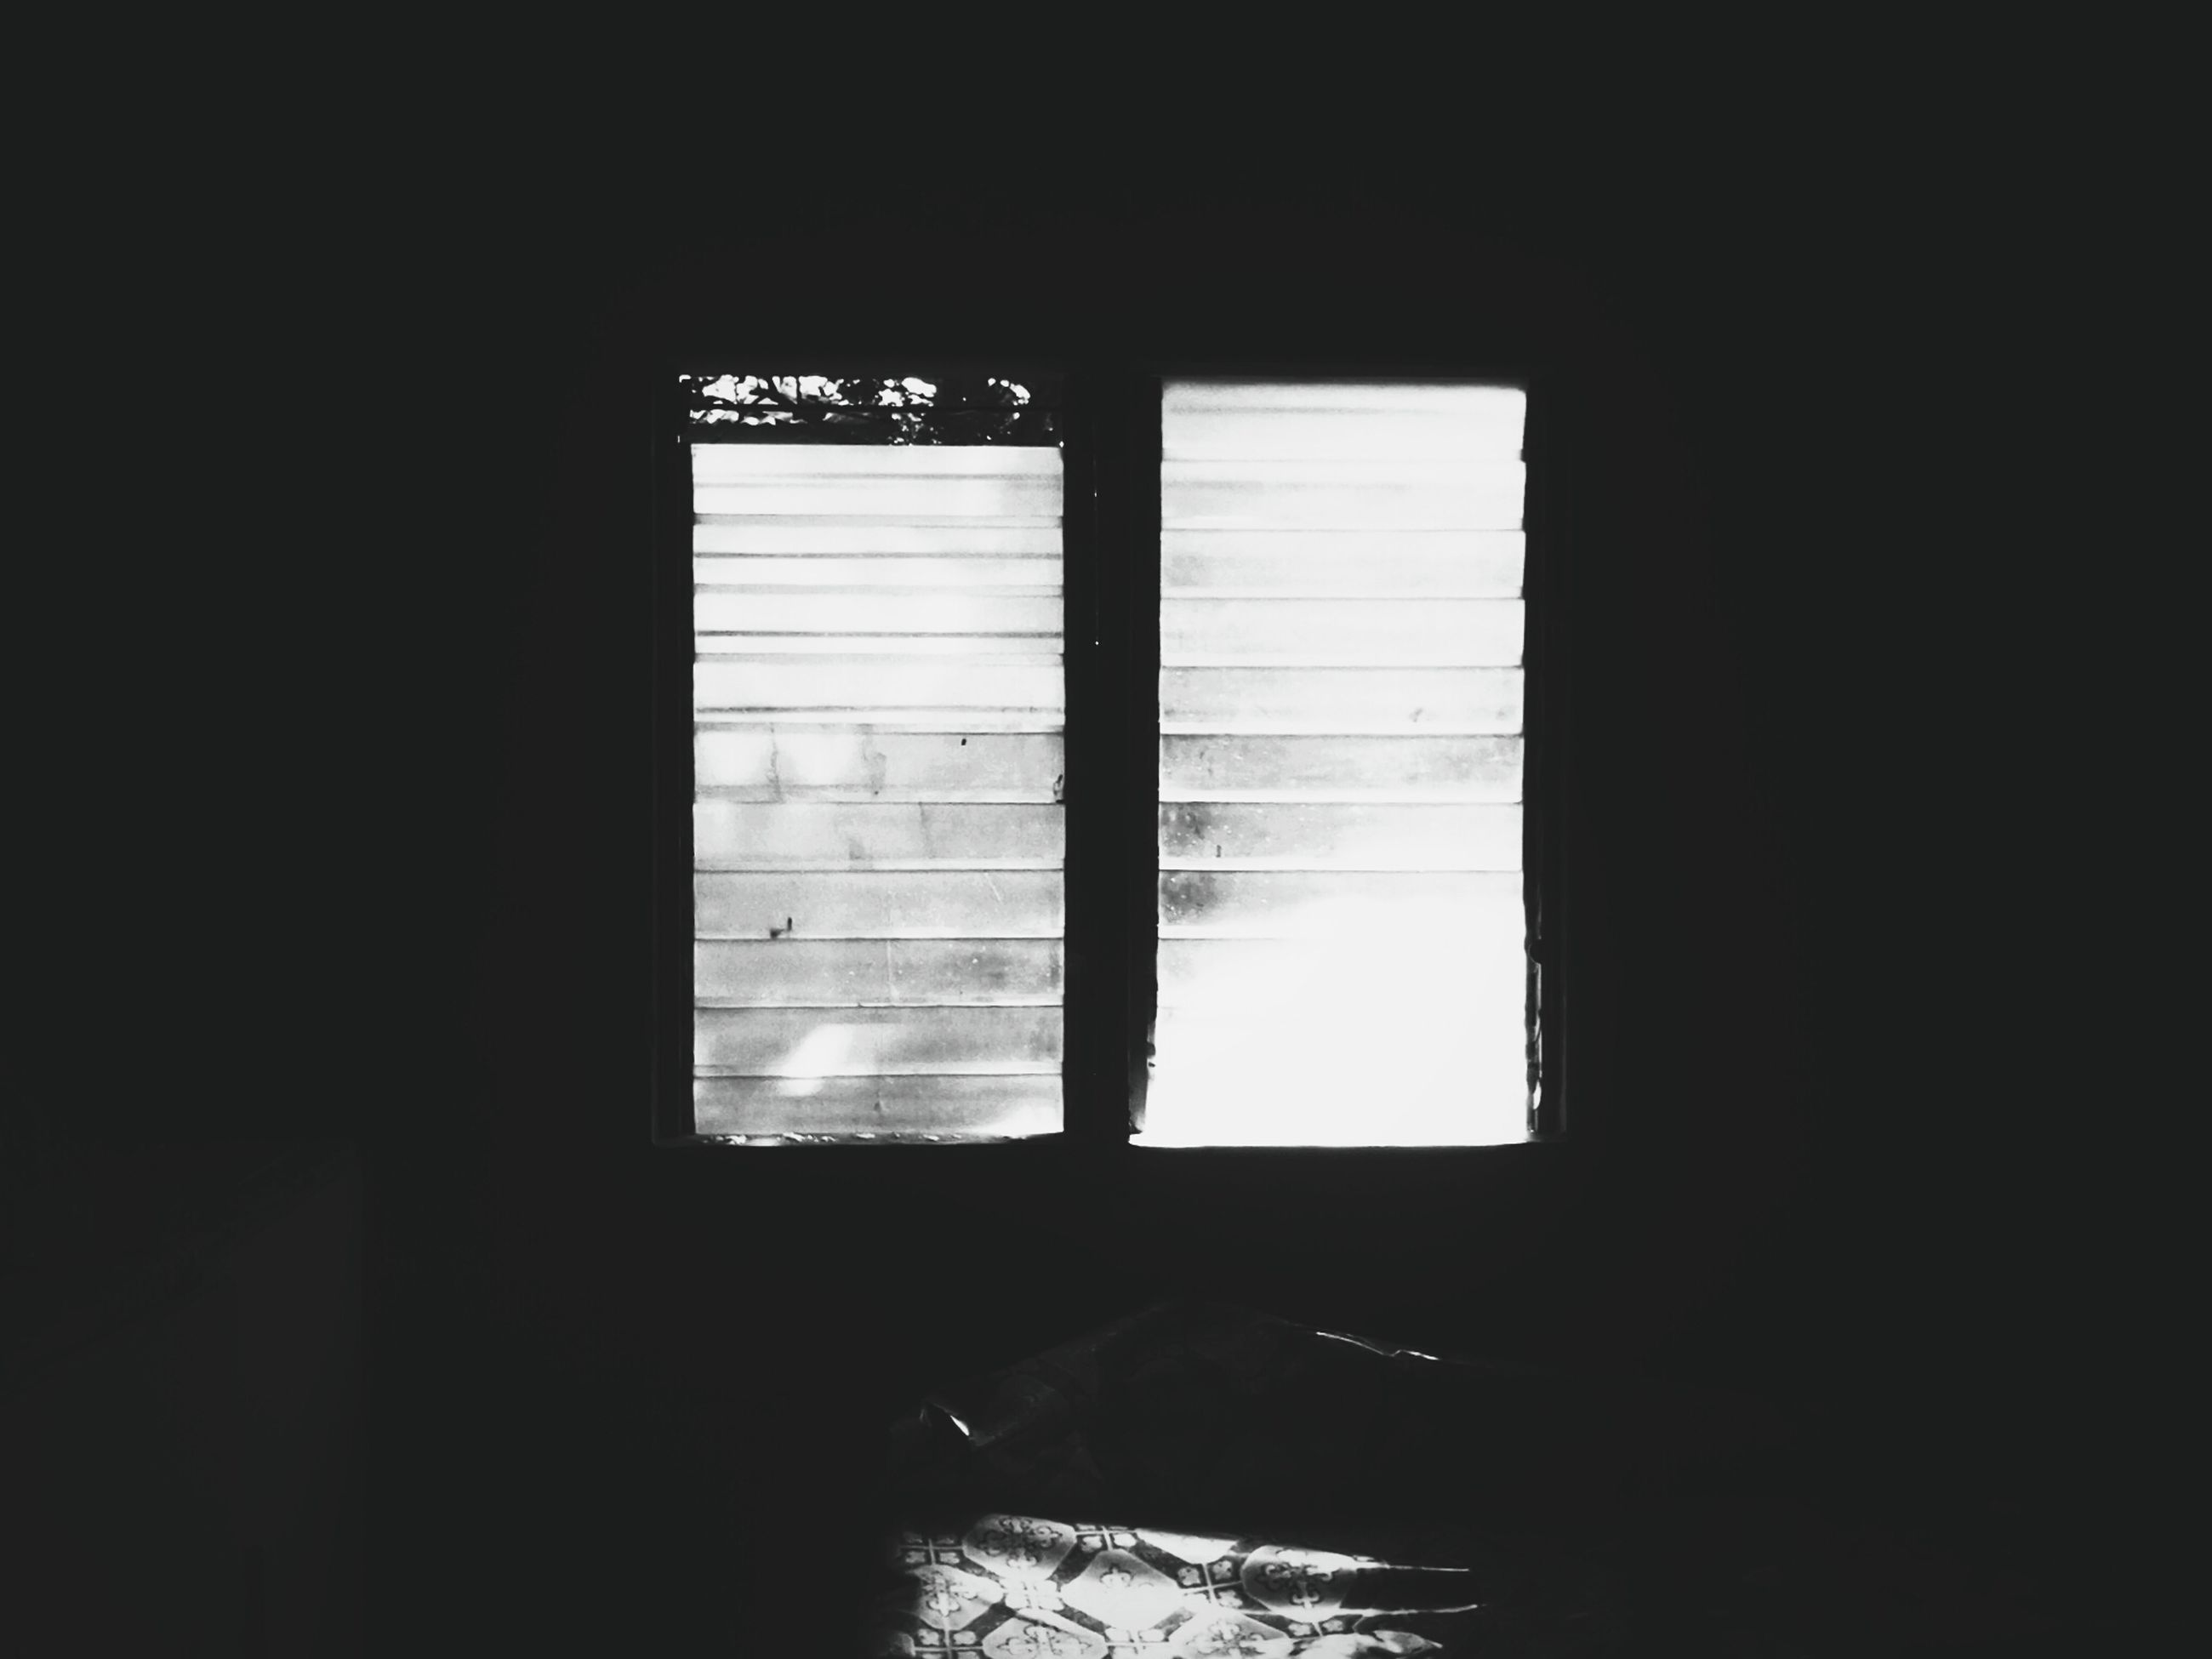 window, indoors, glass - material, transparent, dark, copy space, reflection, closed, open, glass, looking through window, no people, built structure, home interior, curtain, close-up, architecture, sunlight, house, day